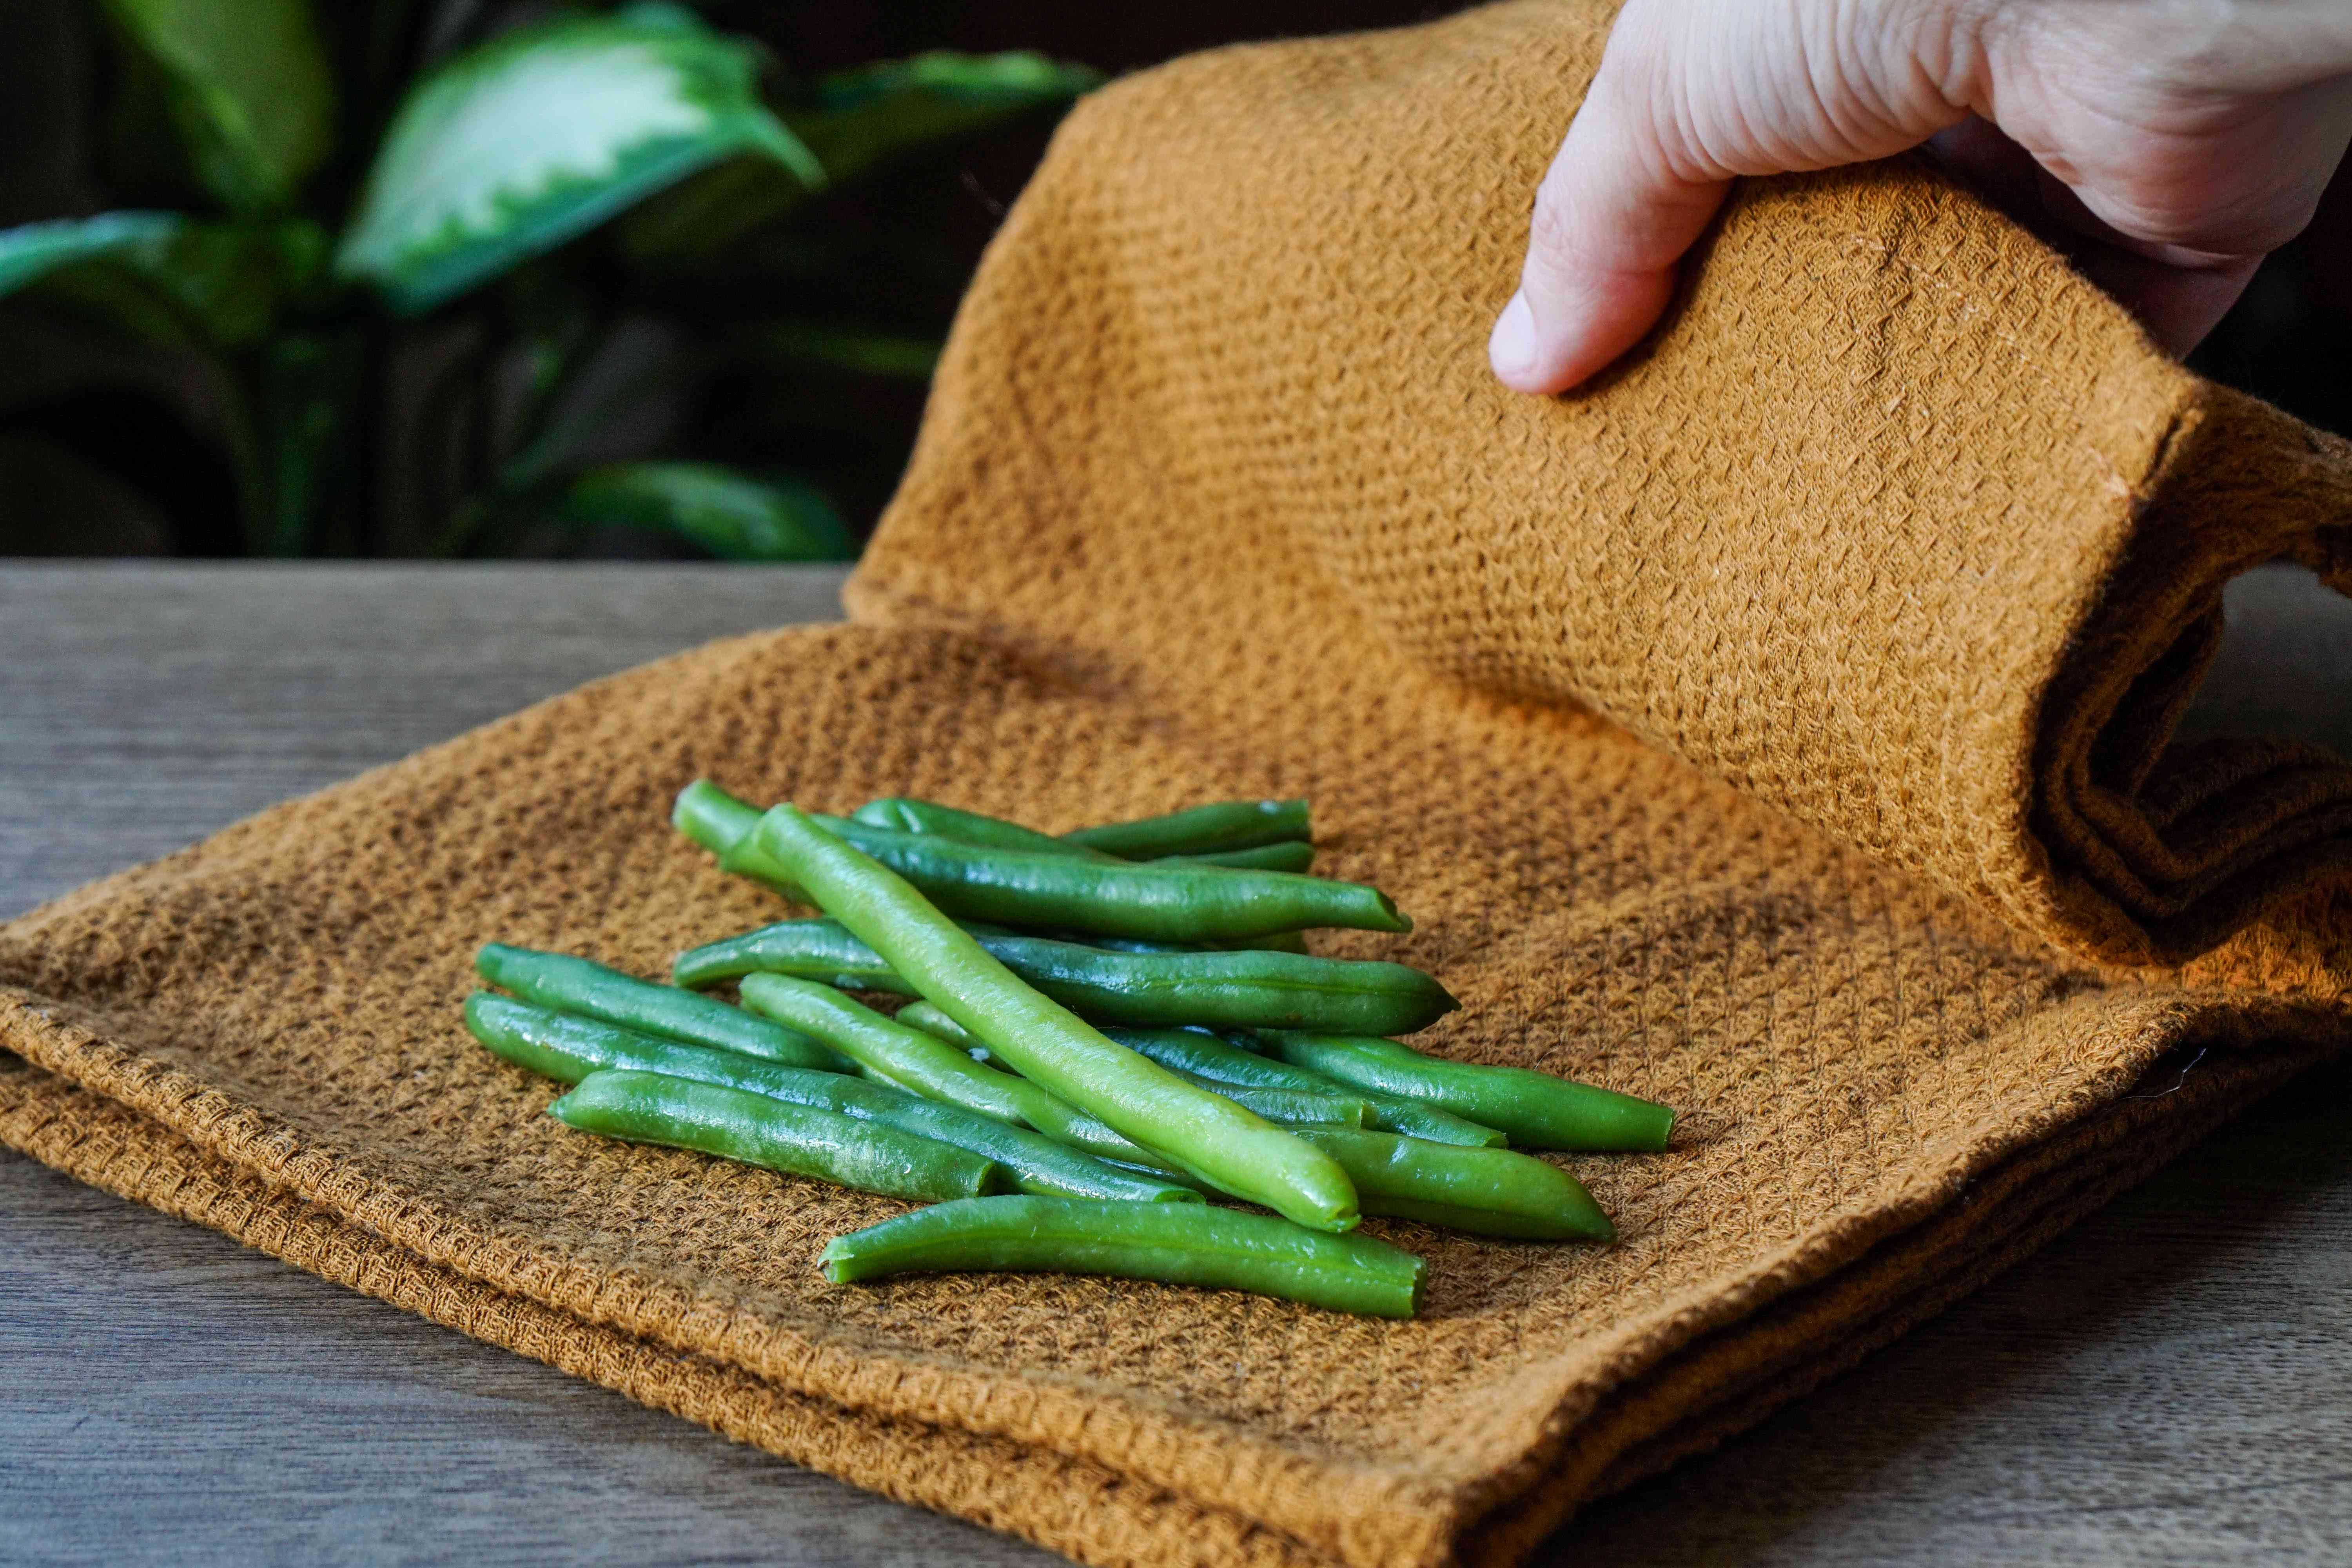 fresh green beans are placed in damp brown fabric for plastic-free storage